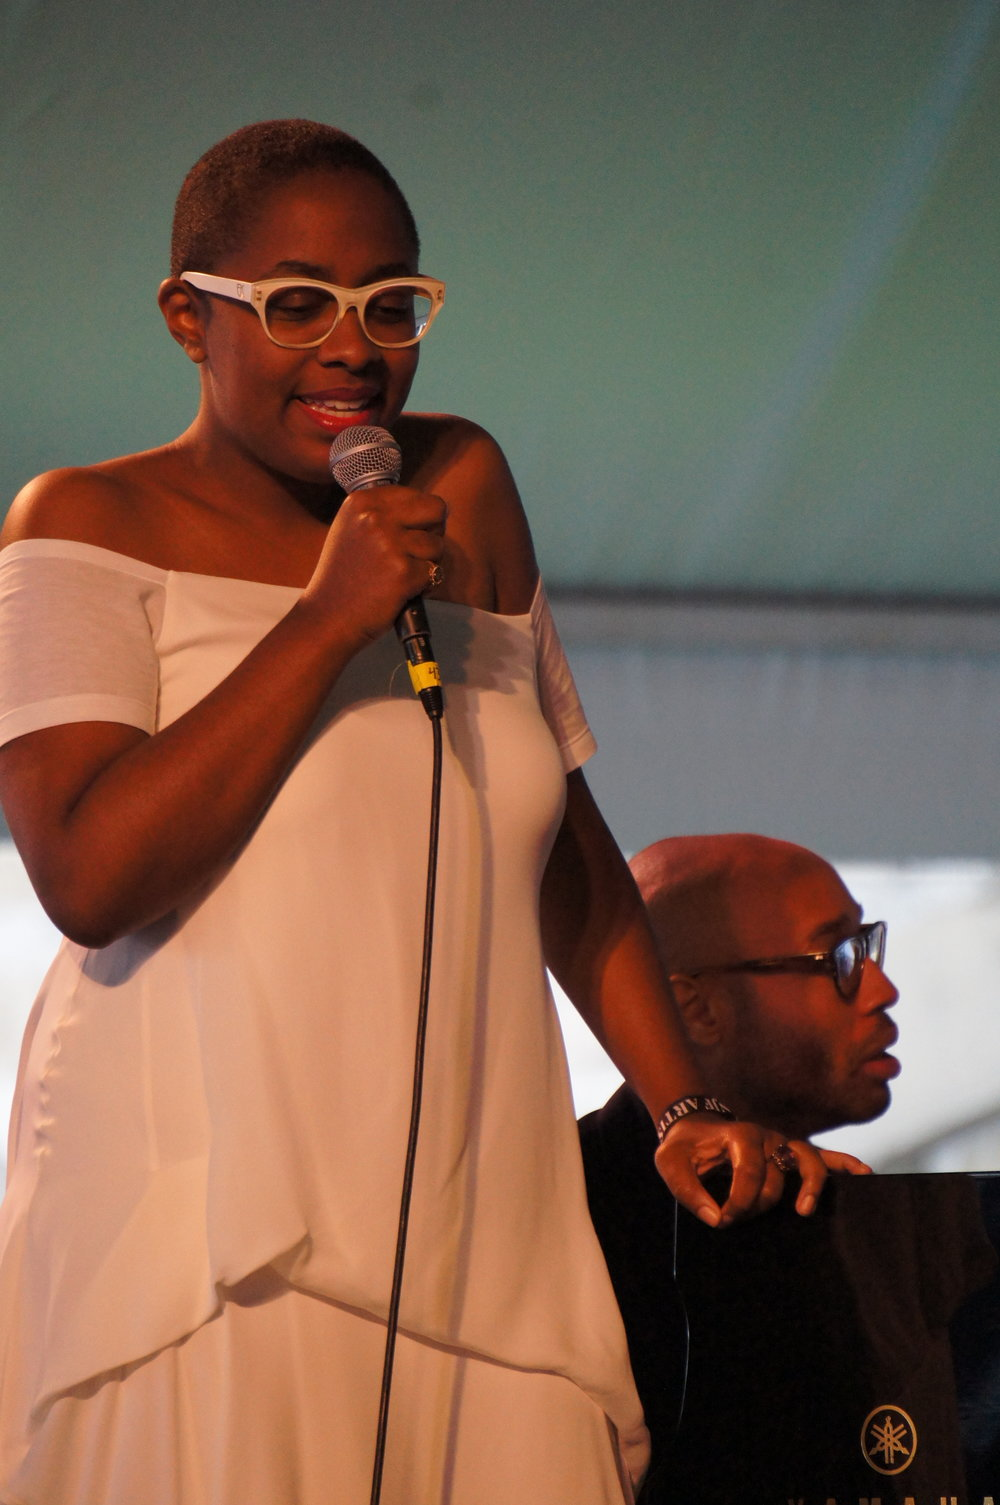 2019 Newport Jazz Festival preview — Stories about music